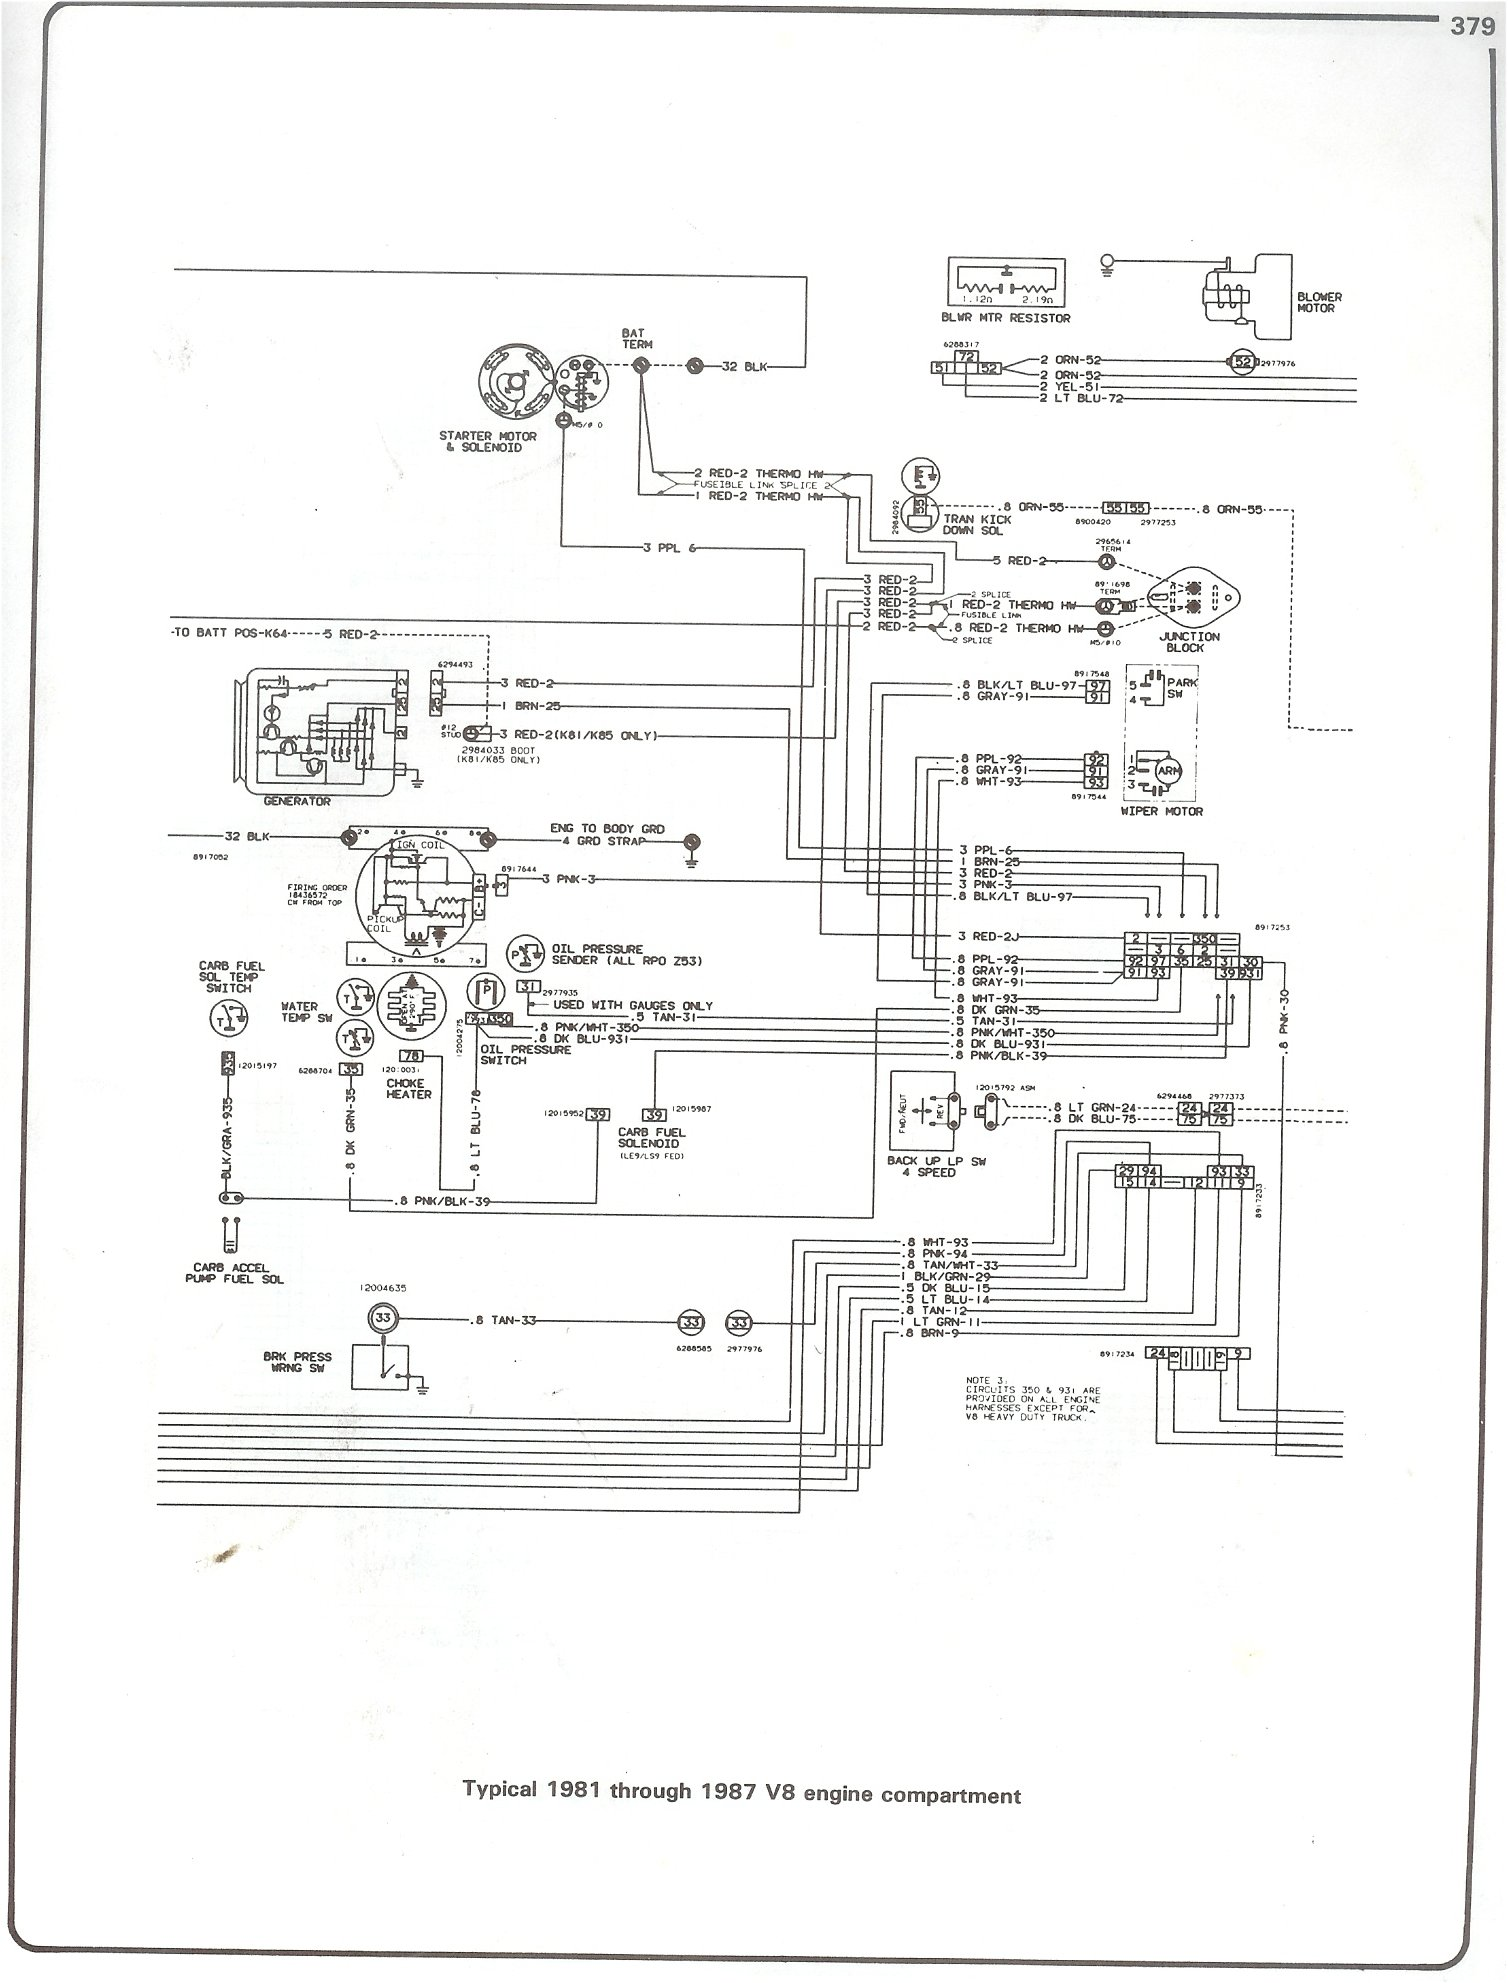 1987 Camaro Fuse Diagram Simple Guide About Wiring 97 Box Complete 73 87 Diagrams Radio